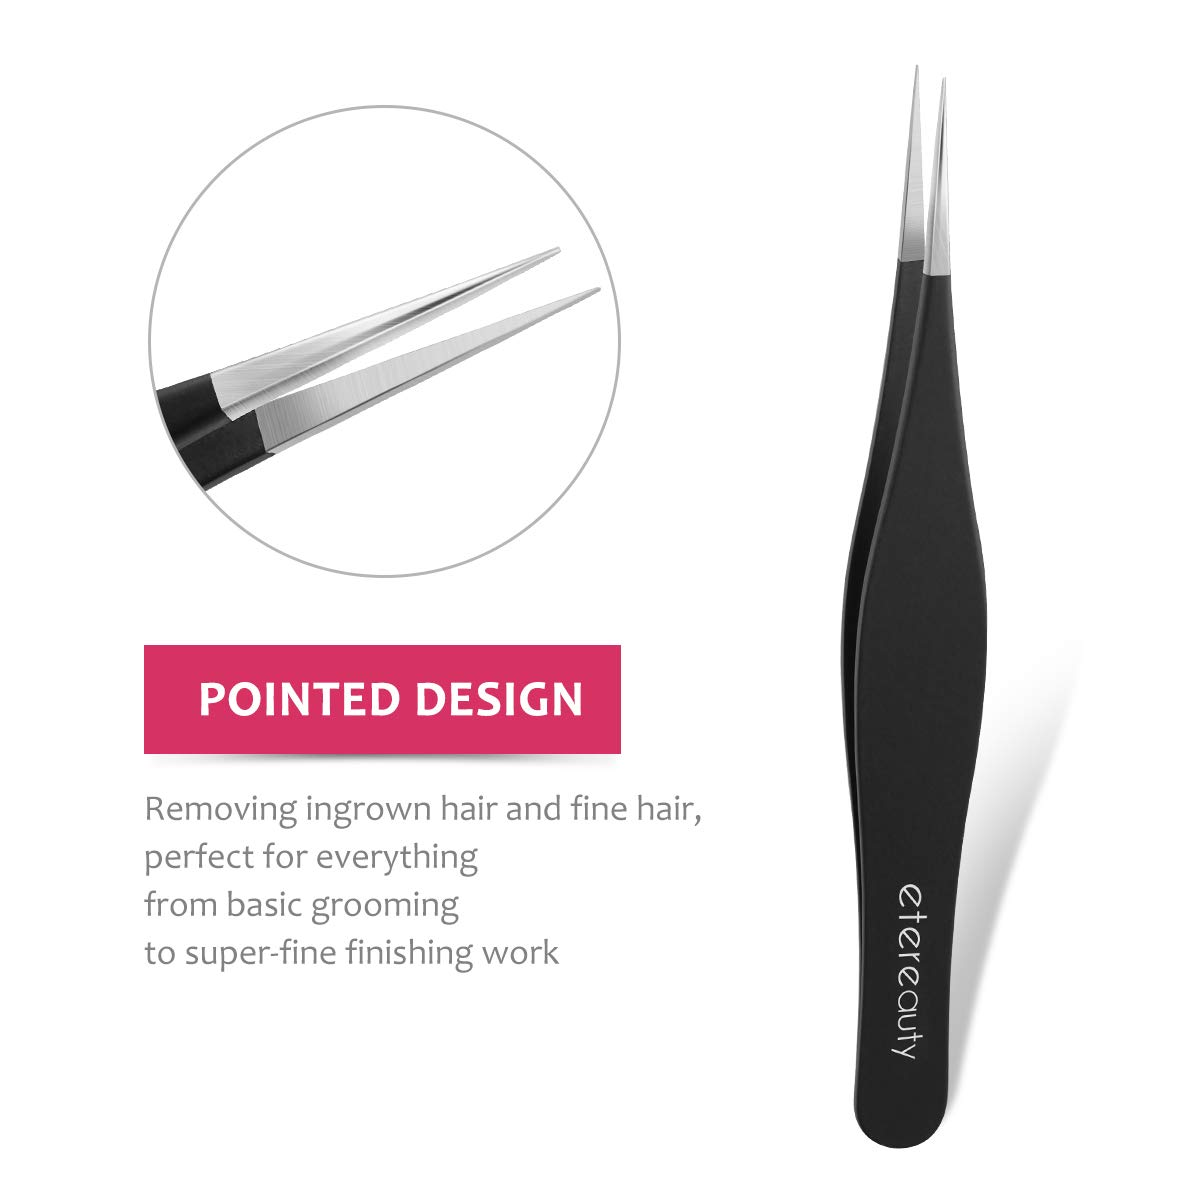 Tweezers Set 3-piece, Tweeze Slant Tip and Pointed Eyebrow Tweezer